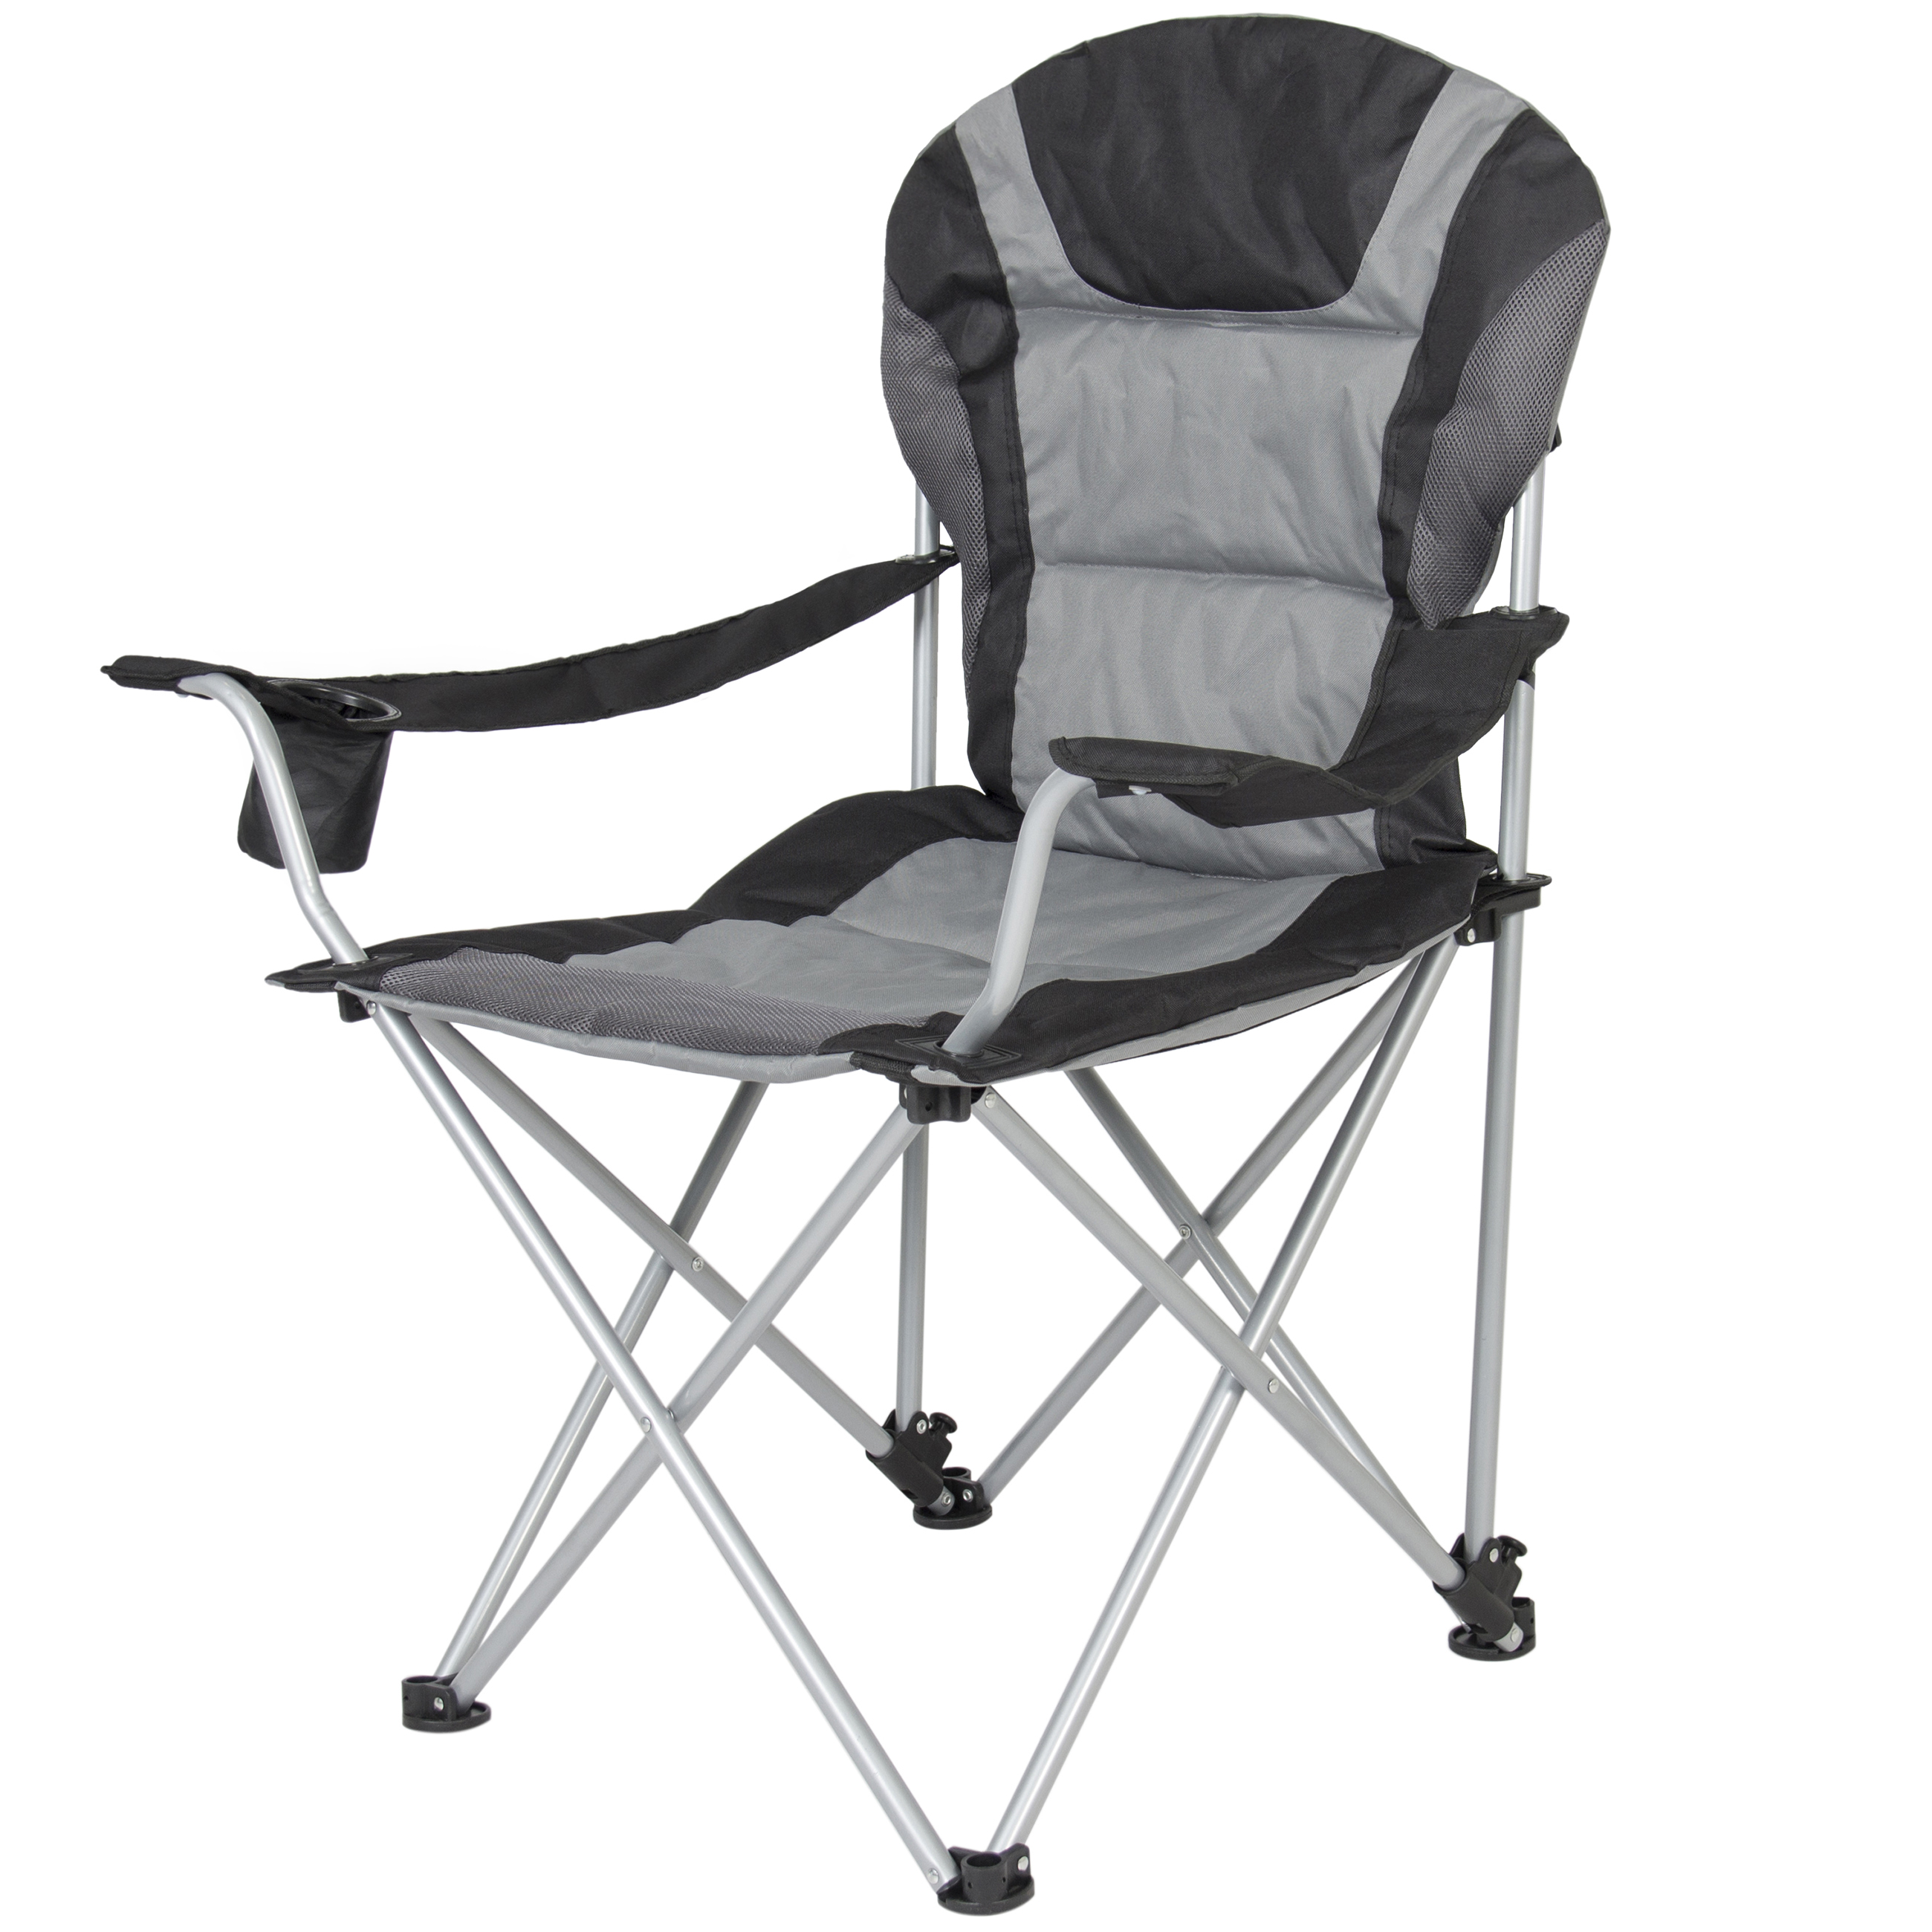 Deluxe Padded Reclining Camping Fishing Beach Chair With Portable